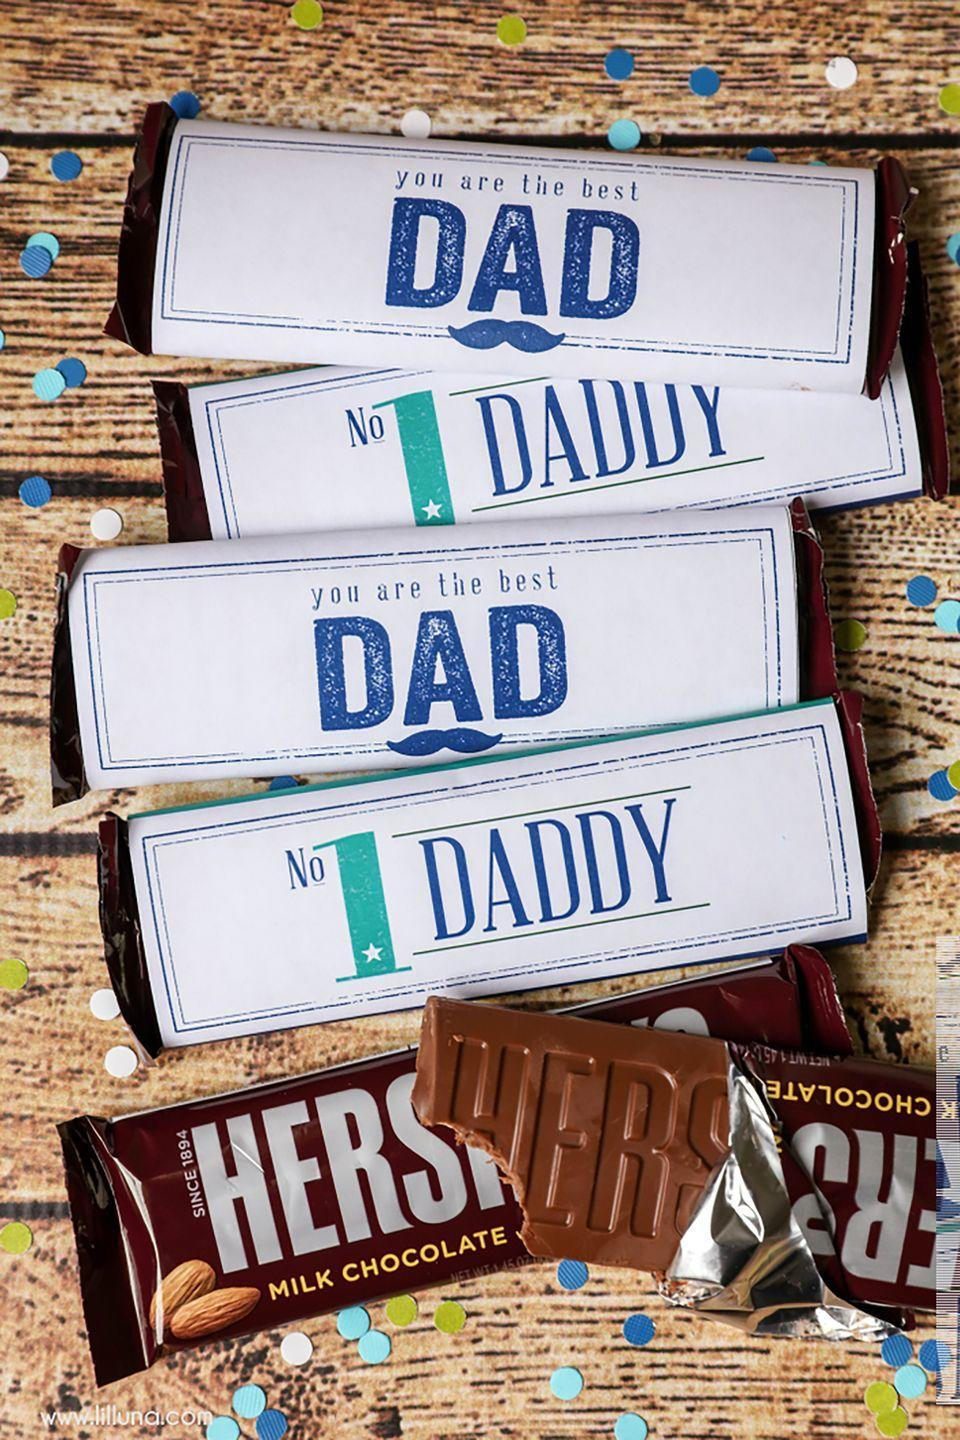 """<p>For an easy, last-minute gift, spruce up Dad's favorite candy or chocolate bar with a printable (and adorable) candy wrapper. </p><p><strong><em>Get the printable at <a href=""""https://lilluna.com/fathers-day-candy-bar-wrappers/"""" rel=""""nofollow noopener"""" target=""""_blank"""" data-ylk=""""slk:Lil' Luna"""" class=""""link rapid-noclick-resp"""">Lil' Luna</a>. </em></strong><br></p><p><strong>What You'll Need: </strong><a href=""""https://www.amazon.com/HERSHEYS-Chocolate-Candy-1-55-Ounce/dp/B000IXWCQO/"""" rel=""""nofollow noopener"""" target=""""_blank"""" data-ylk=""""slk:Hershey's chocolate"""" class=""""link rapid-noclick-resp"""">Hershey's chocolate</a> candy bars ($23 for 36, Amazon) </p>"""